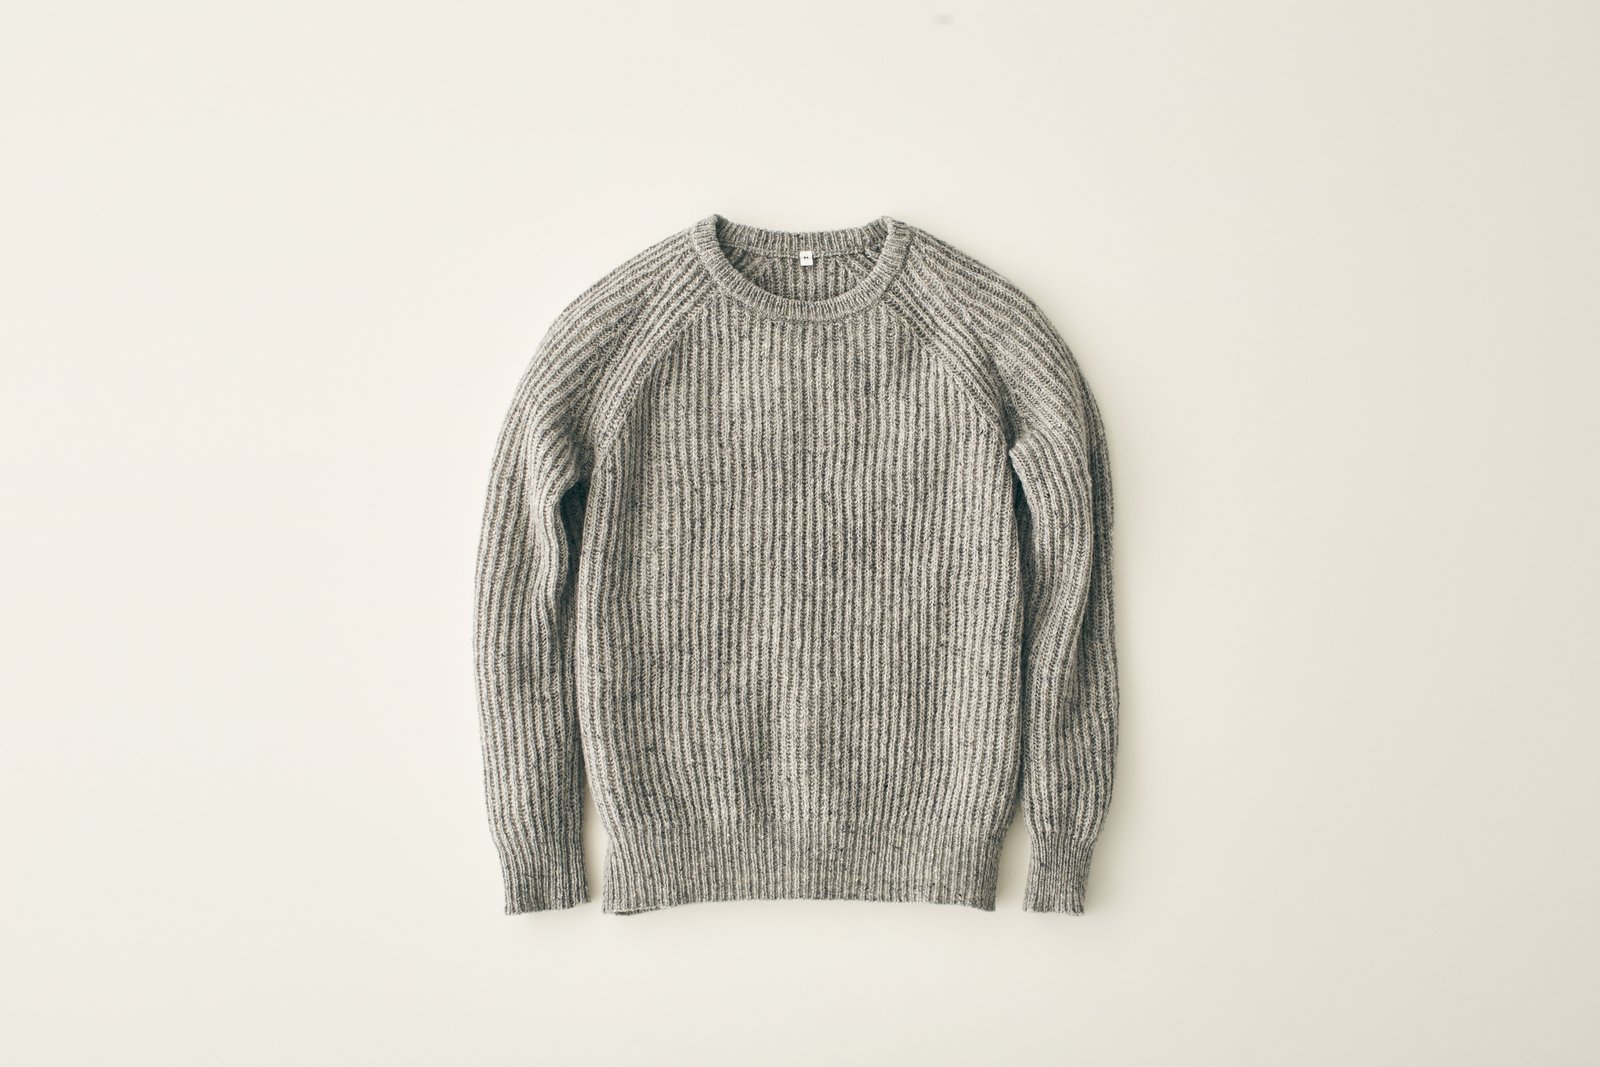 Photo 1 of 7 in Every Fiber of Muji's New Clothing and Apparel Line Can Be Yours for $80 or Less